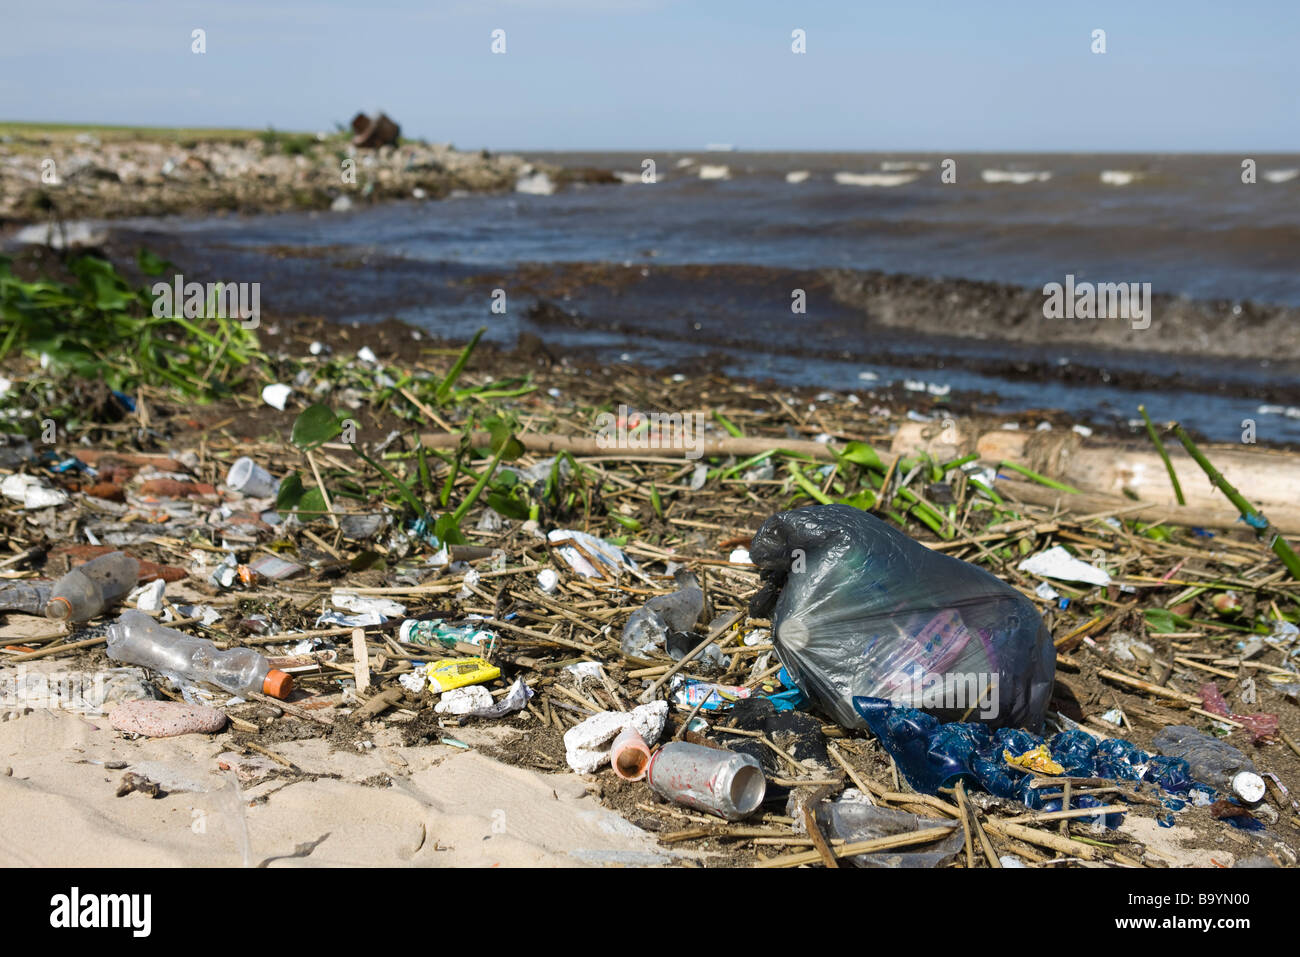 Trash washed up along shore - Stock Image